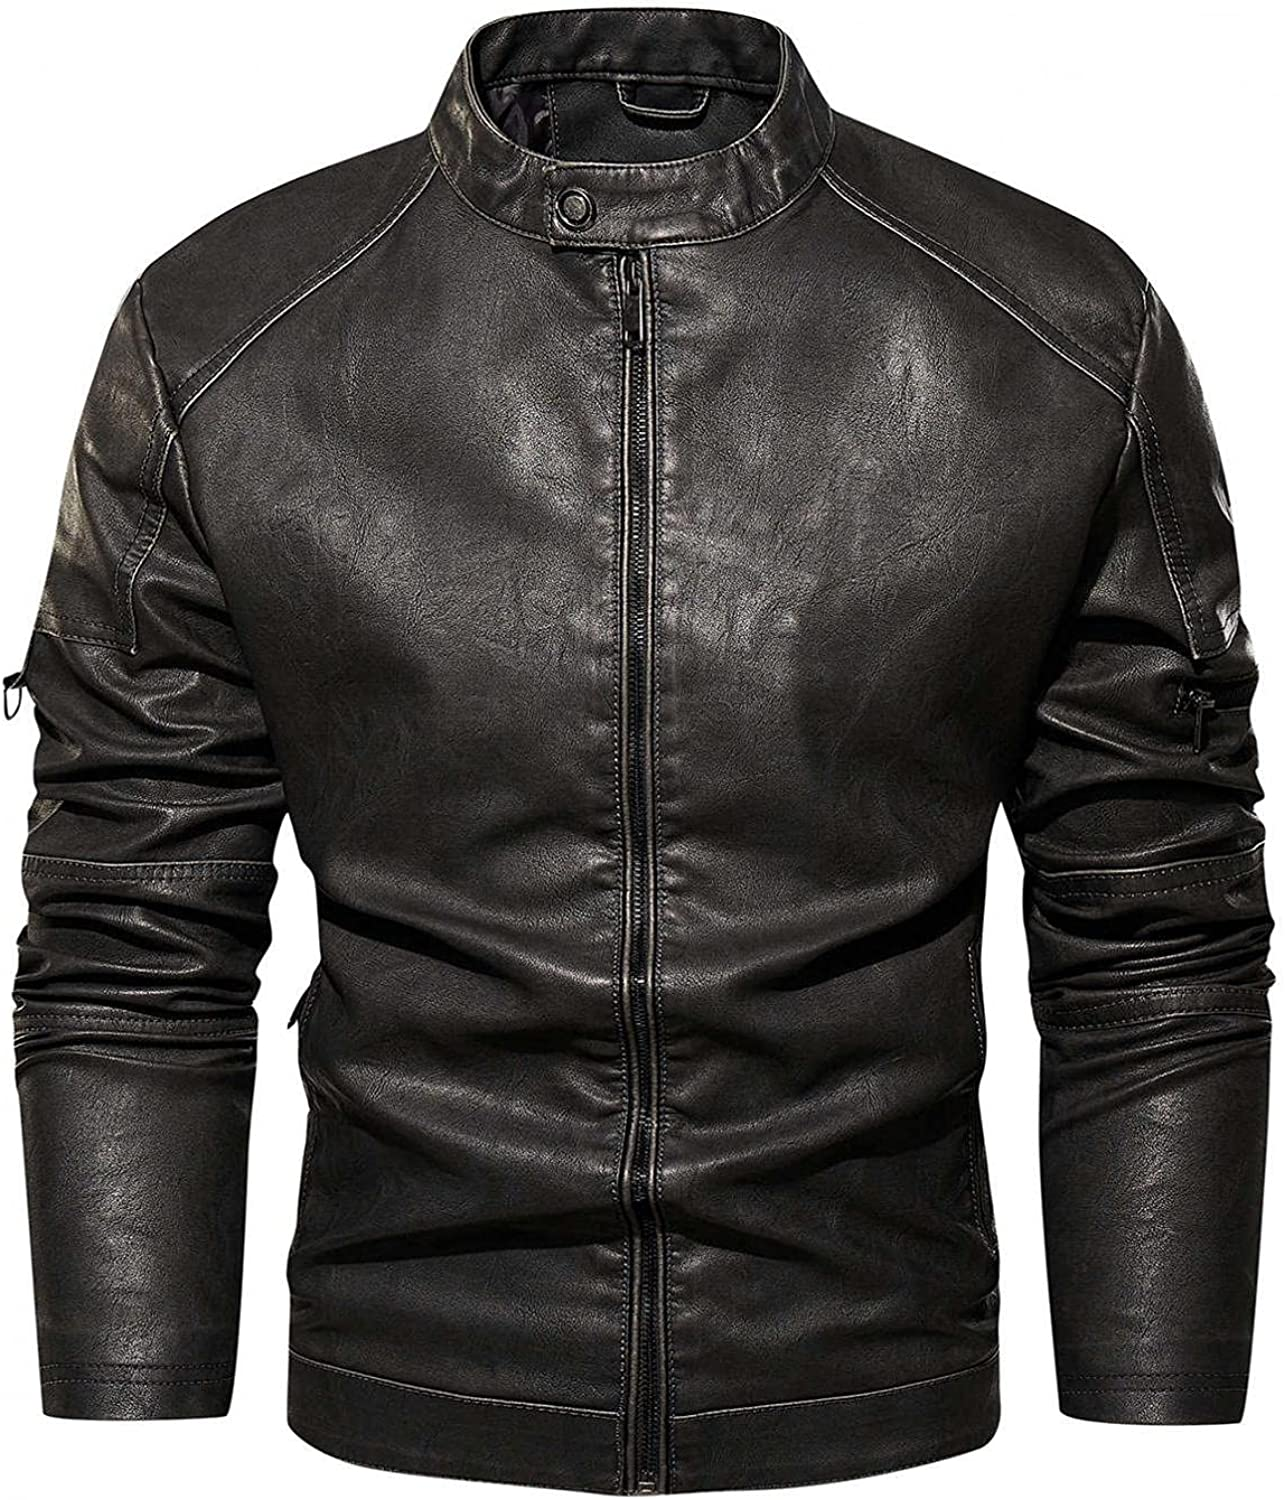 Mens Leather Jackets Stand Collar Full Zipper Windbreaker Outwear Tops Warm Thicken Sweatershirts Motorcycle Overcoat